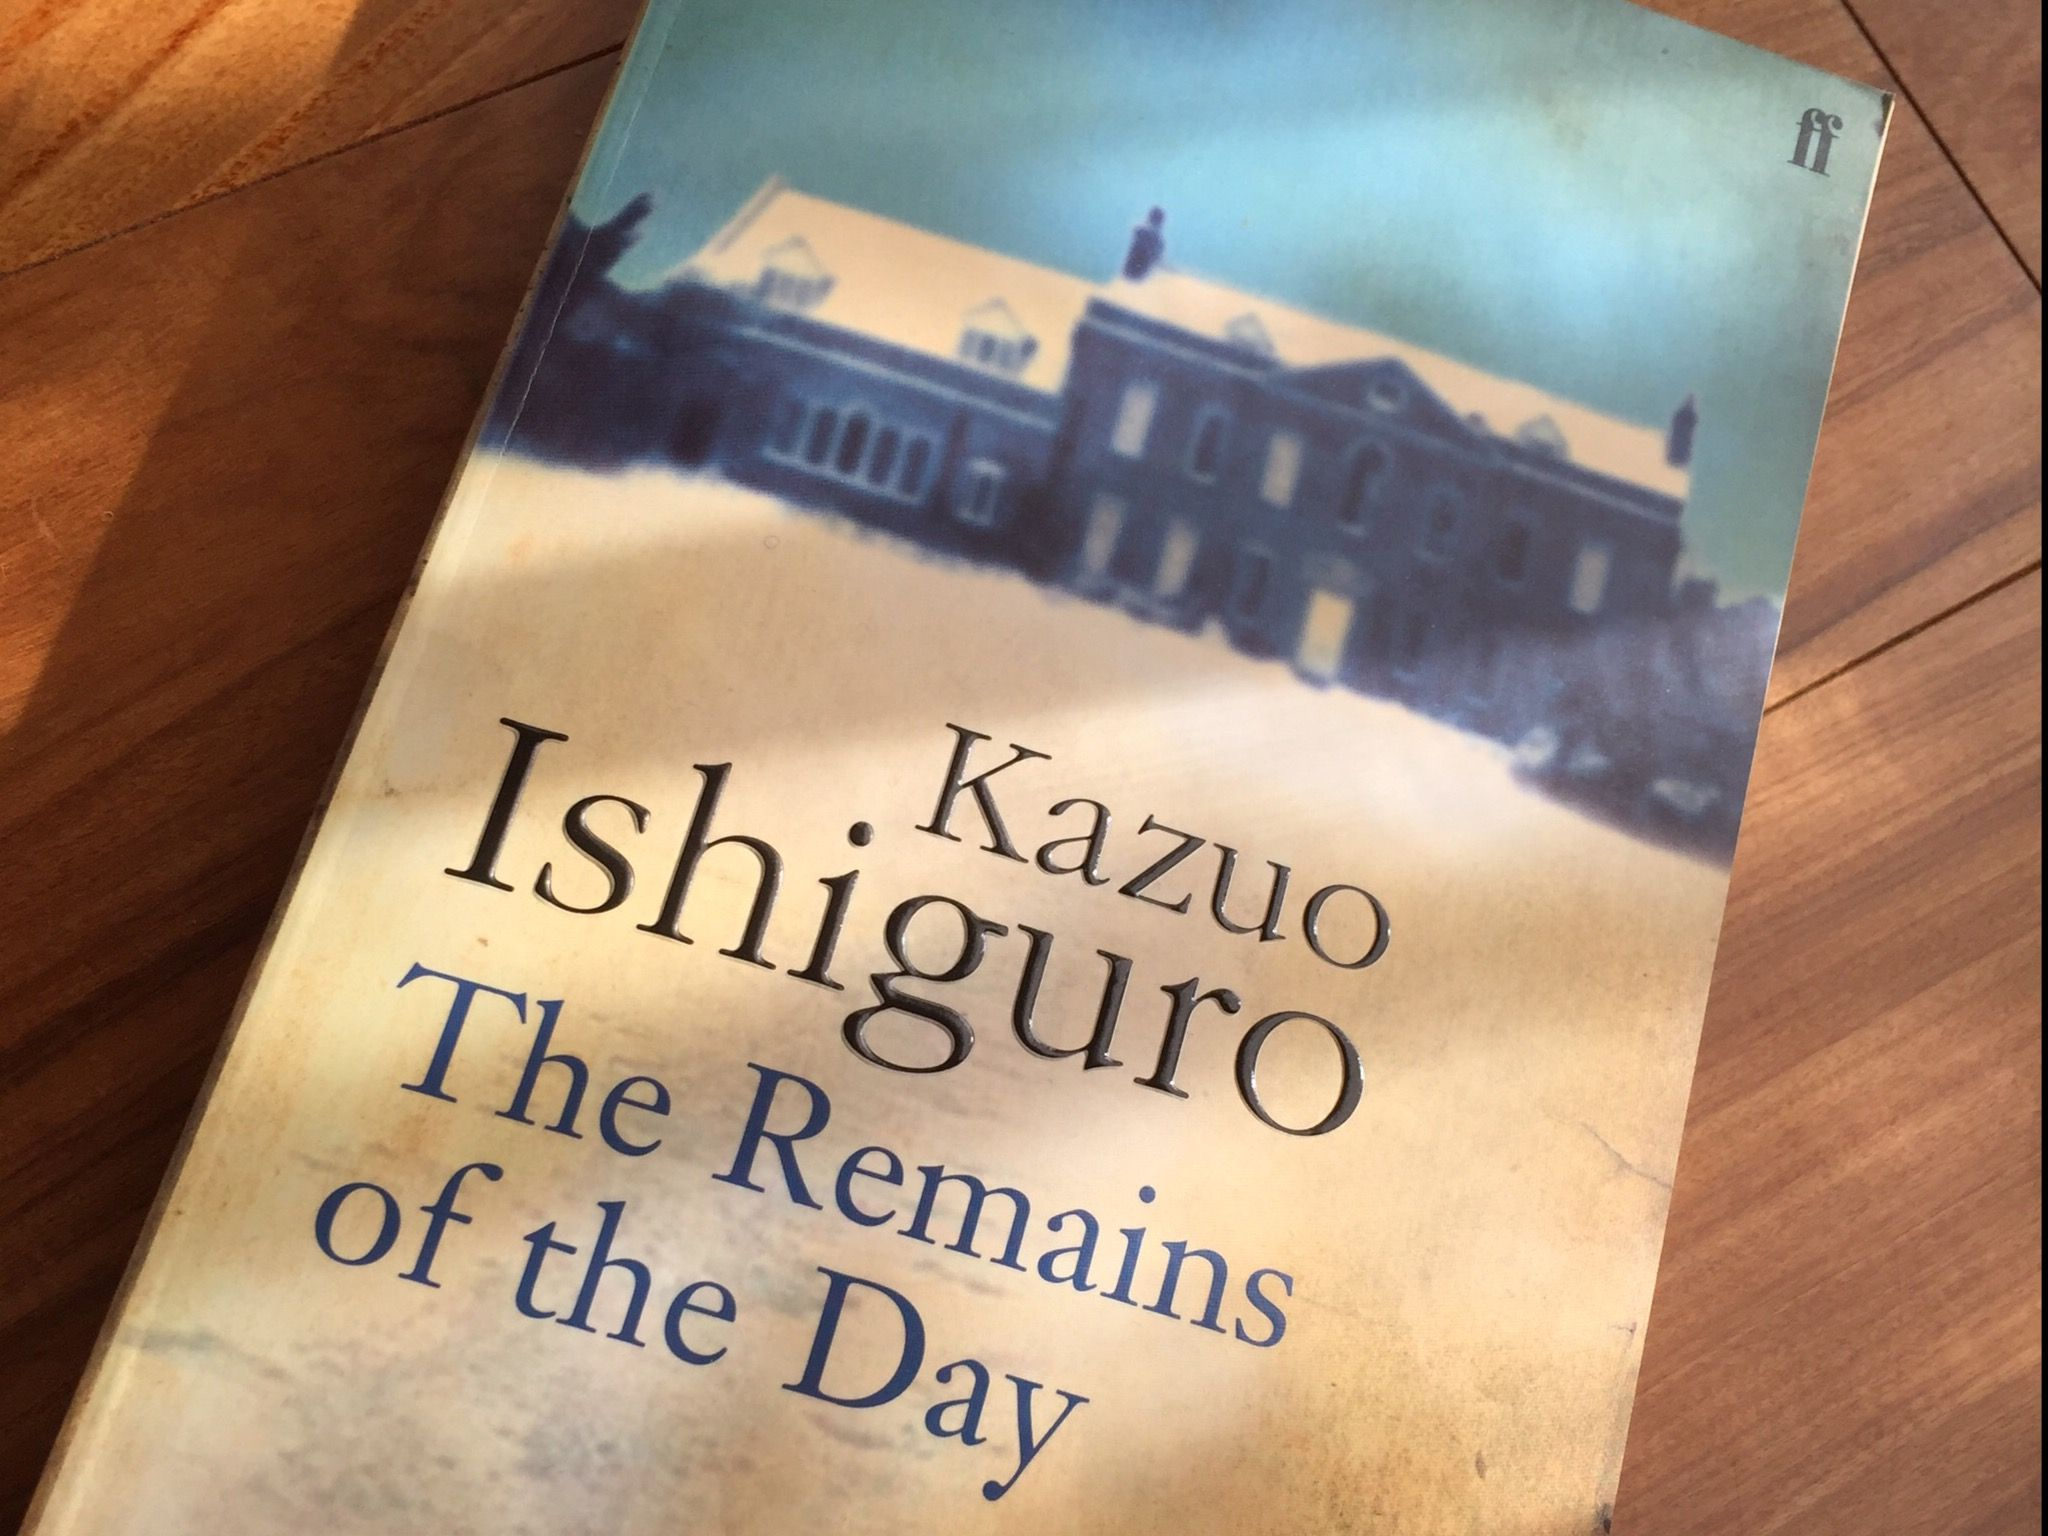 Kazuo Ishiguro The Remains of the Day表紙